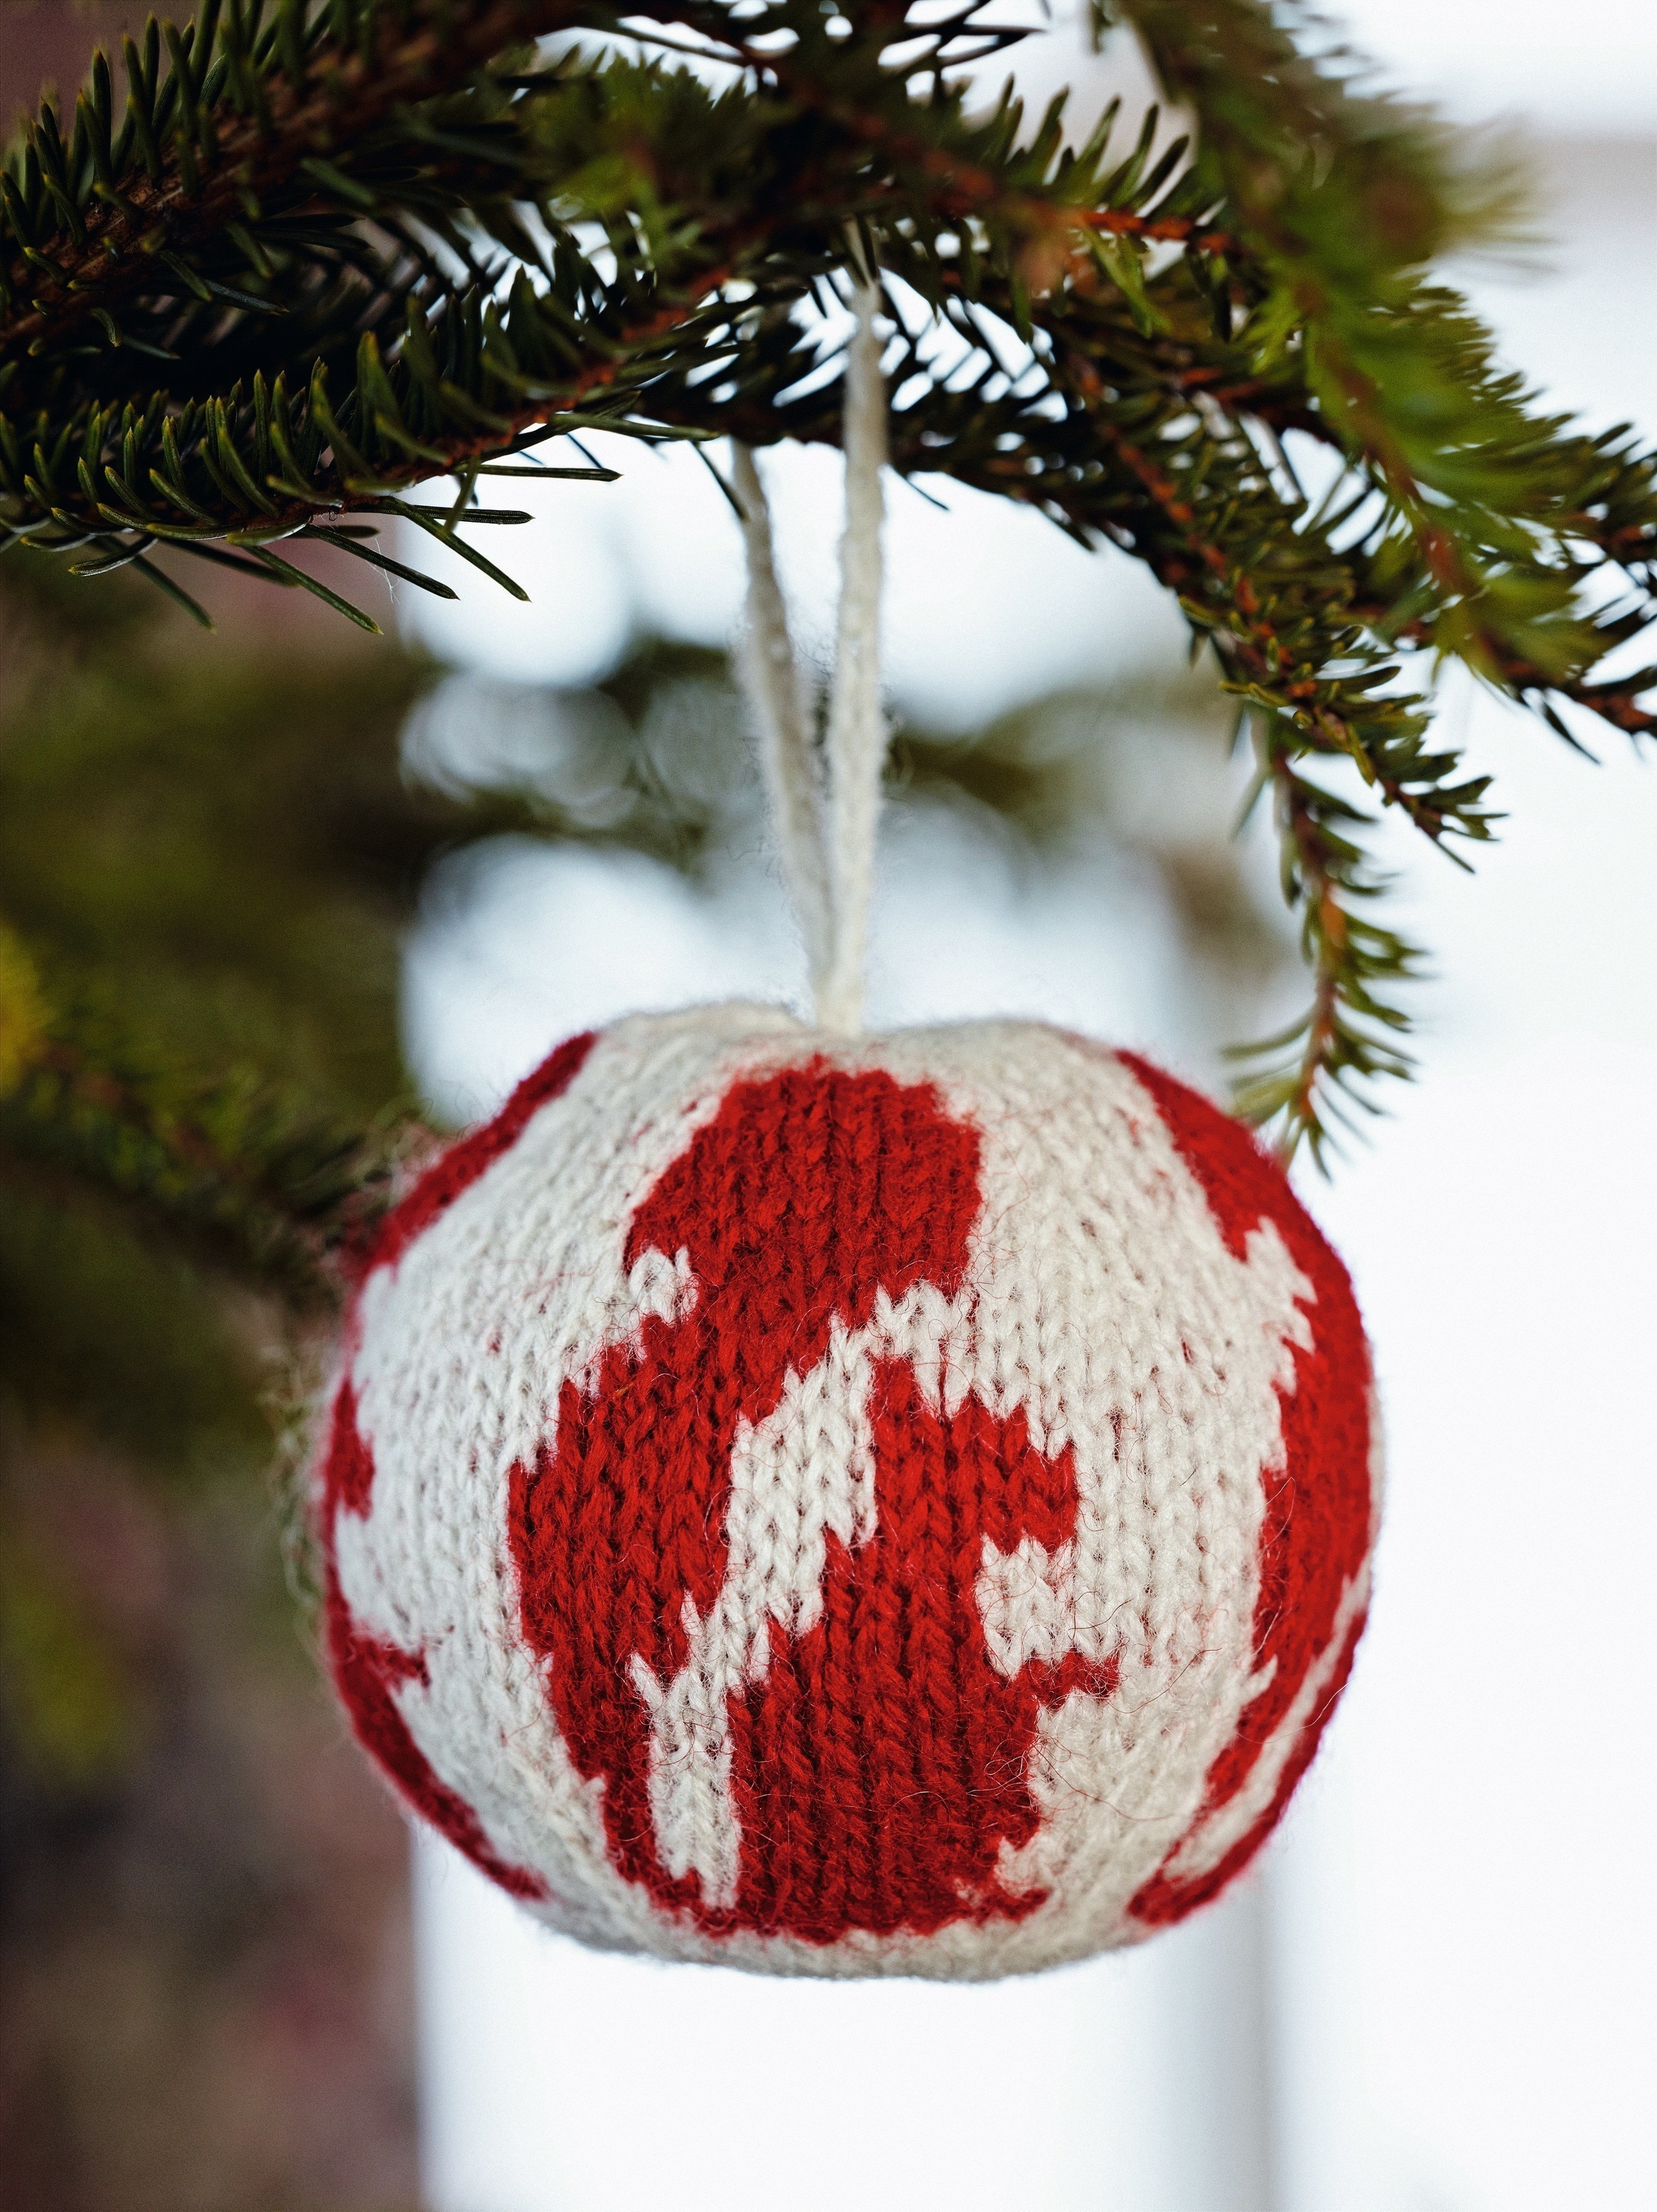 Squirrel Knitted Christmas Ball Extract From 55 Christmas Balls To Knit By Arne Nerjordet How To Make A Christmas Tree Ornament